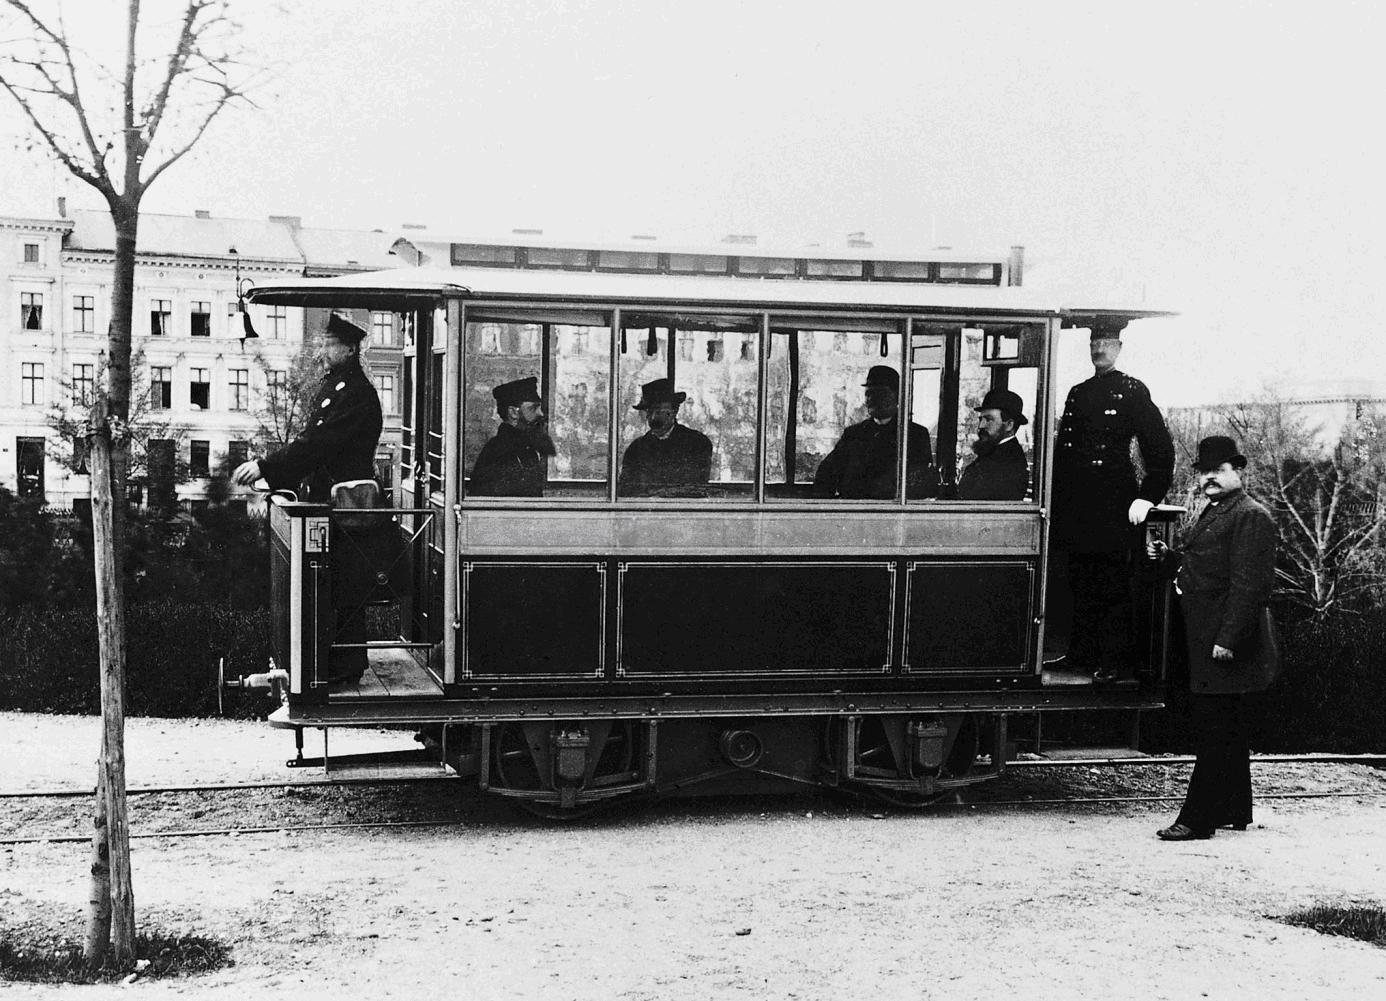 Electric tramway